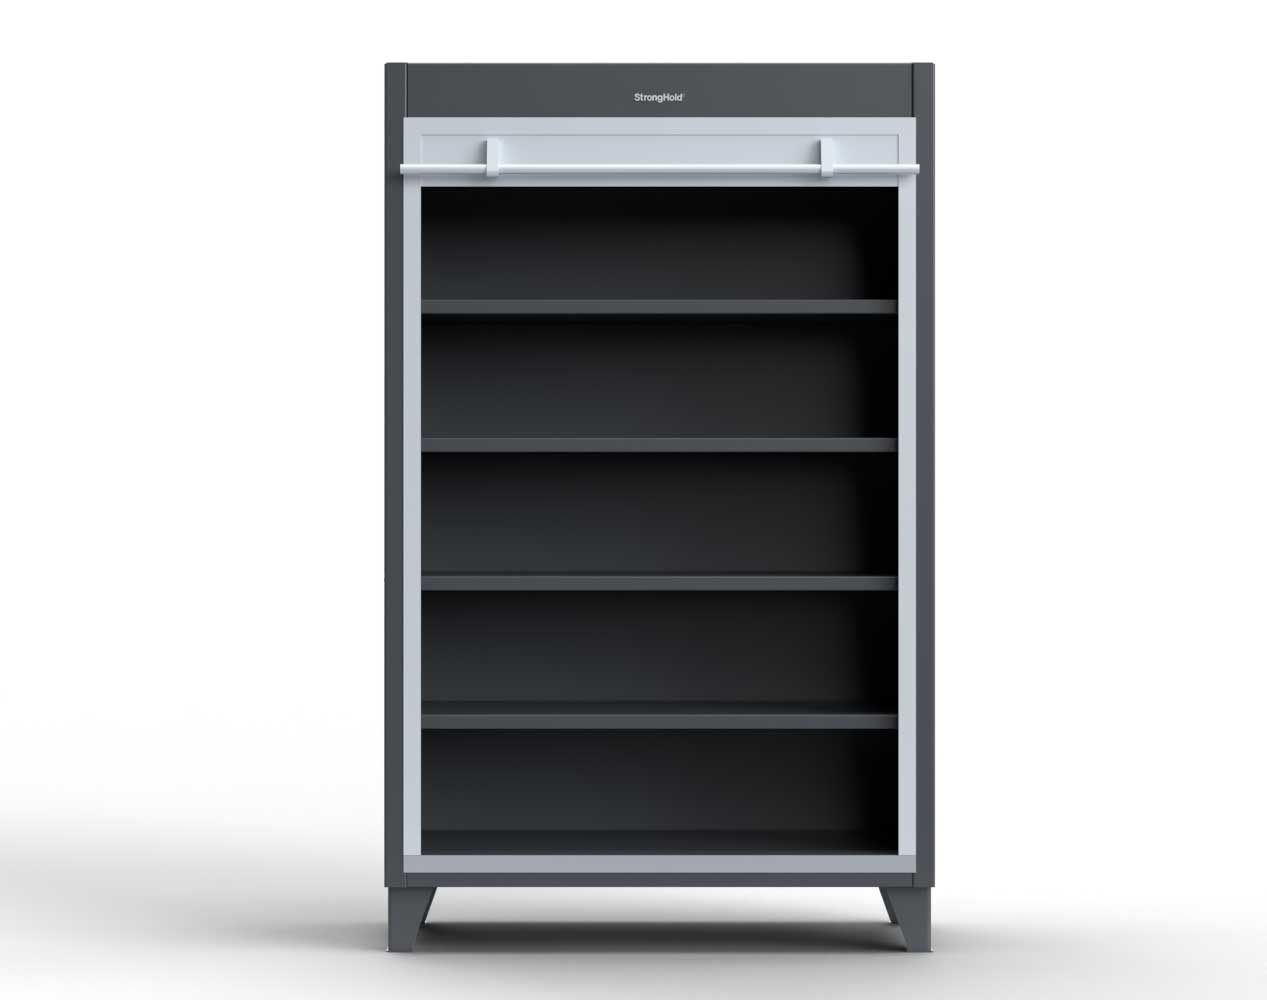 Extra Heavy Duty 12 GA Cabinet with Roll-Up Door, 4 Shelves – 60 In. W x 24 In. D x 78 In. H